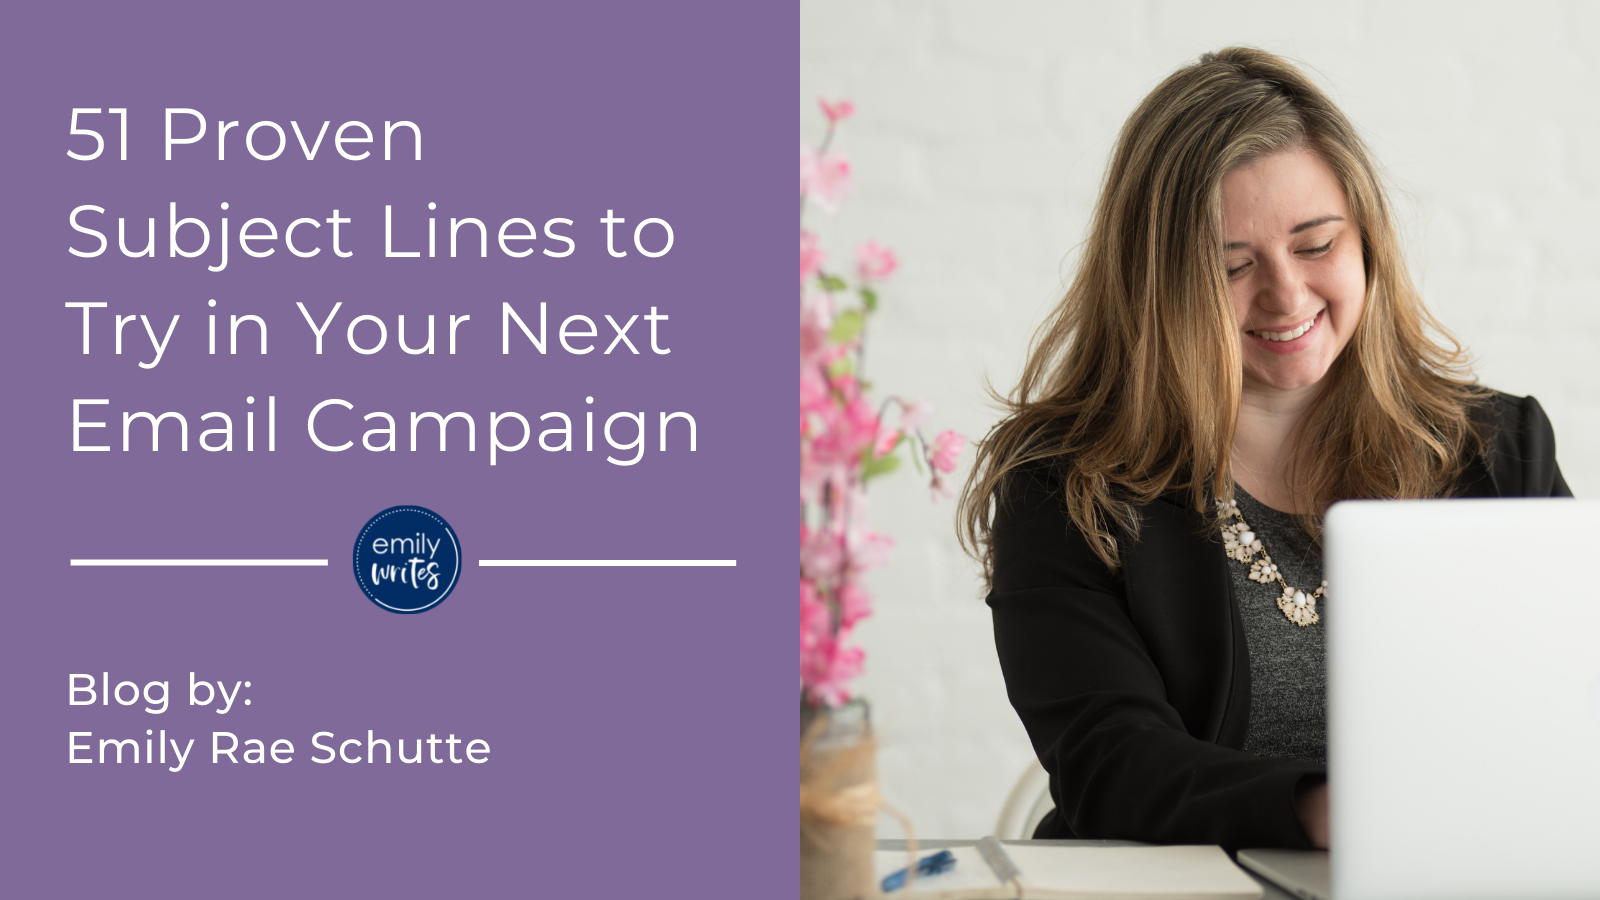 51 Proven Subject Lines to Try in Your Next Email Campaign